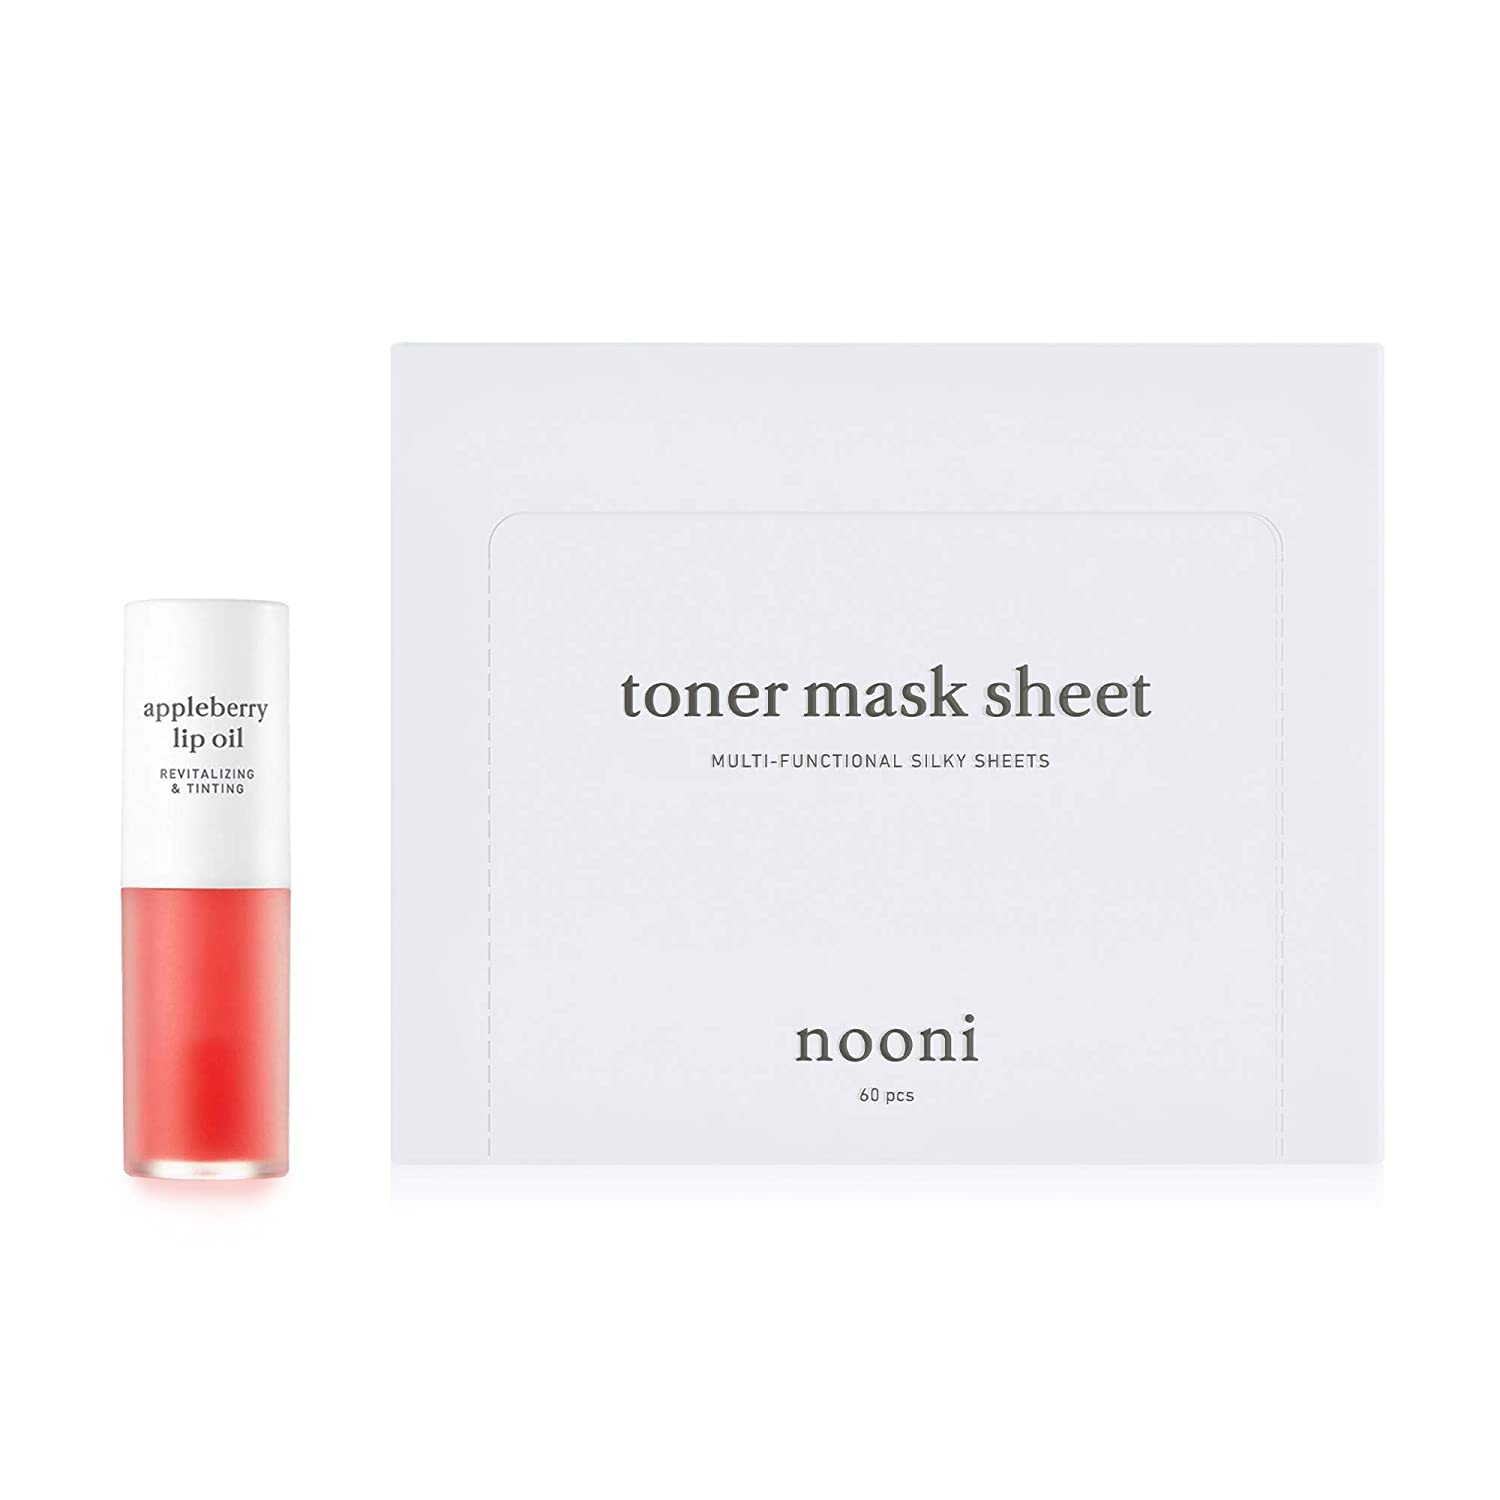 NOONI Appleberry Lip Oil + Toner Mask Sheets Bundle